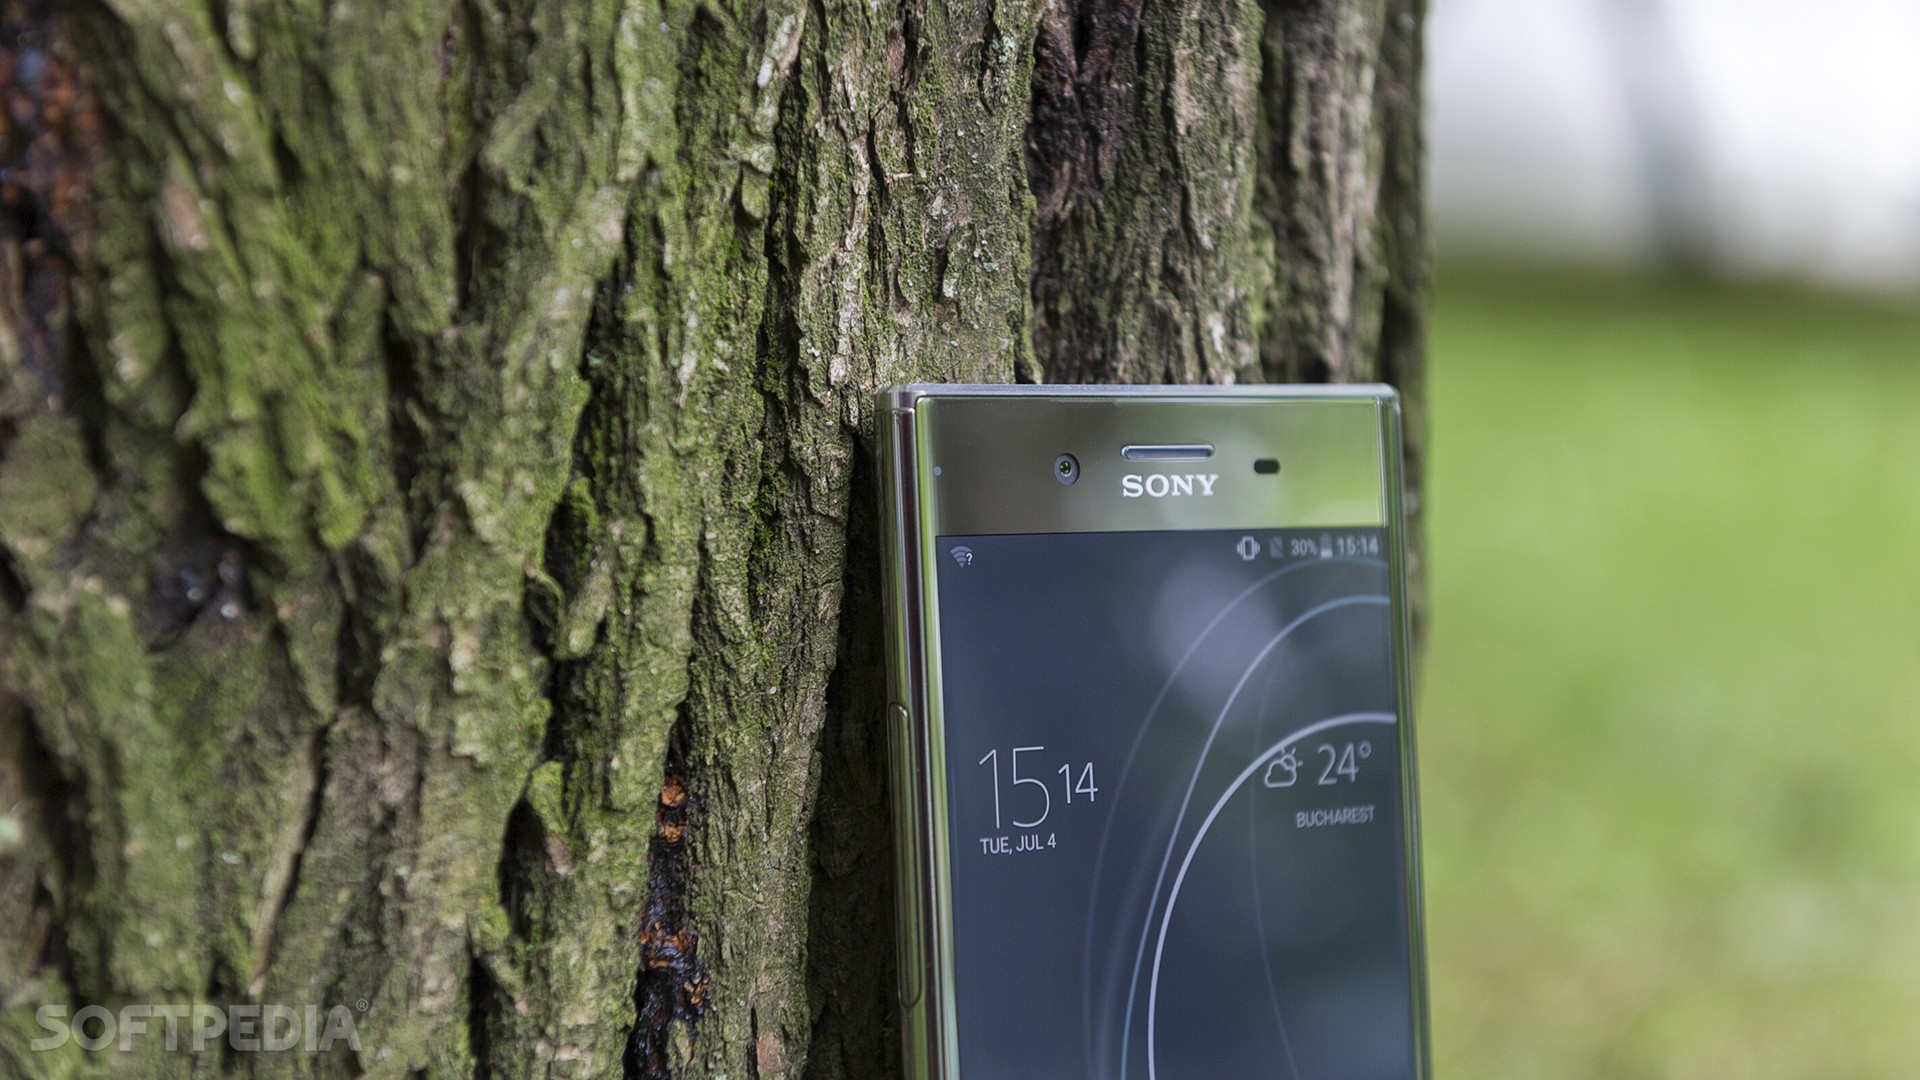 Sony Xperia XZ Premium Review - Mister Handsome